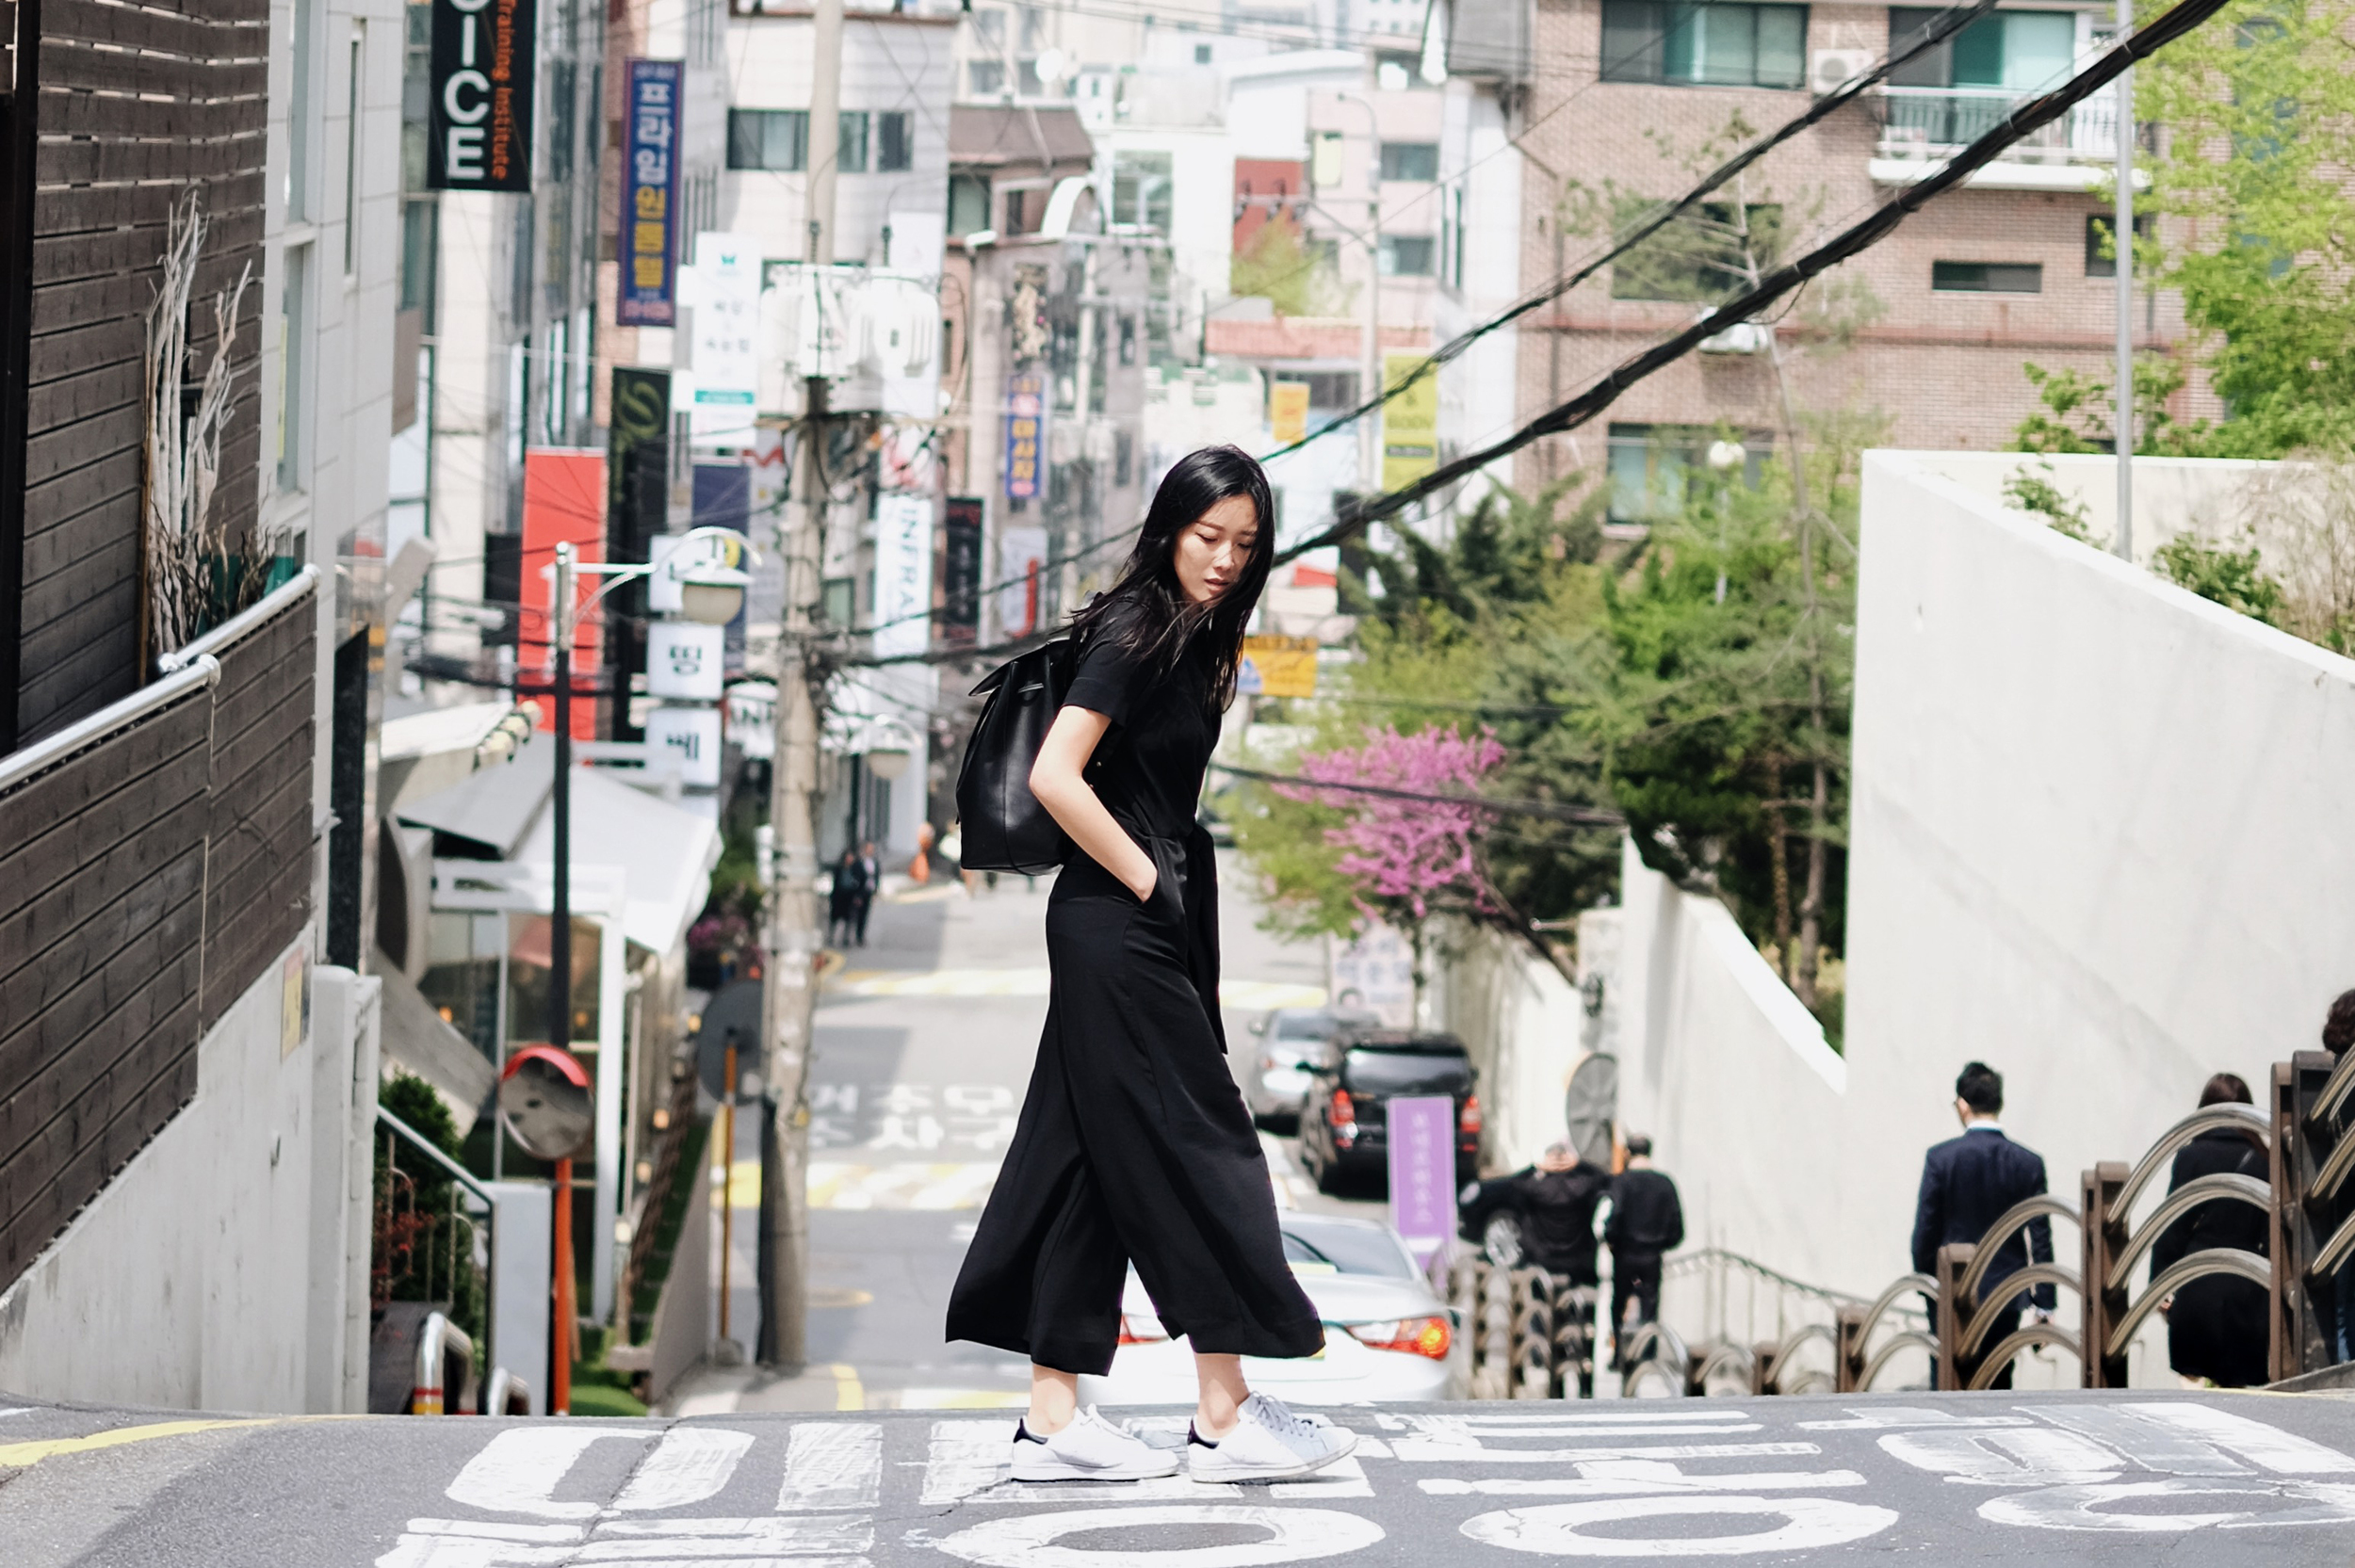 COS   Jumpsuit   /  MANSUR GAVRIEL   Bag     / ADIDAS   Sneakers